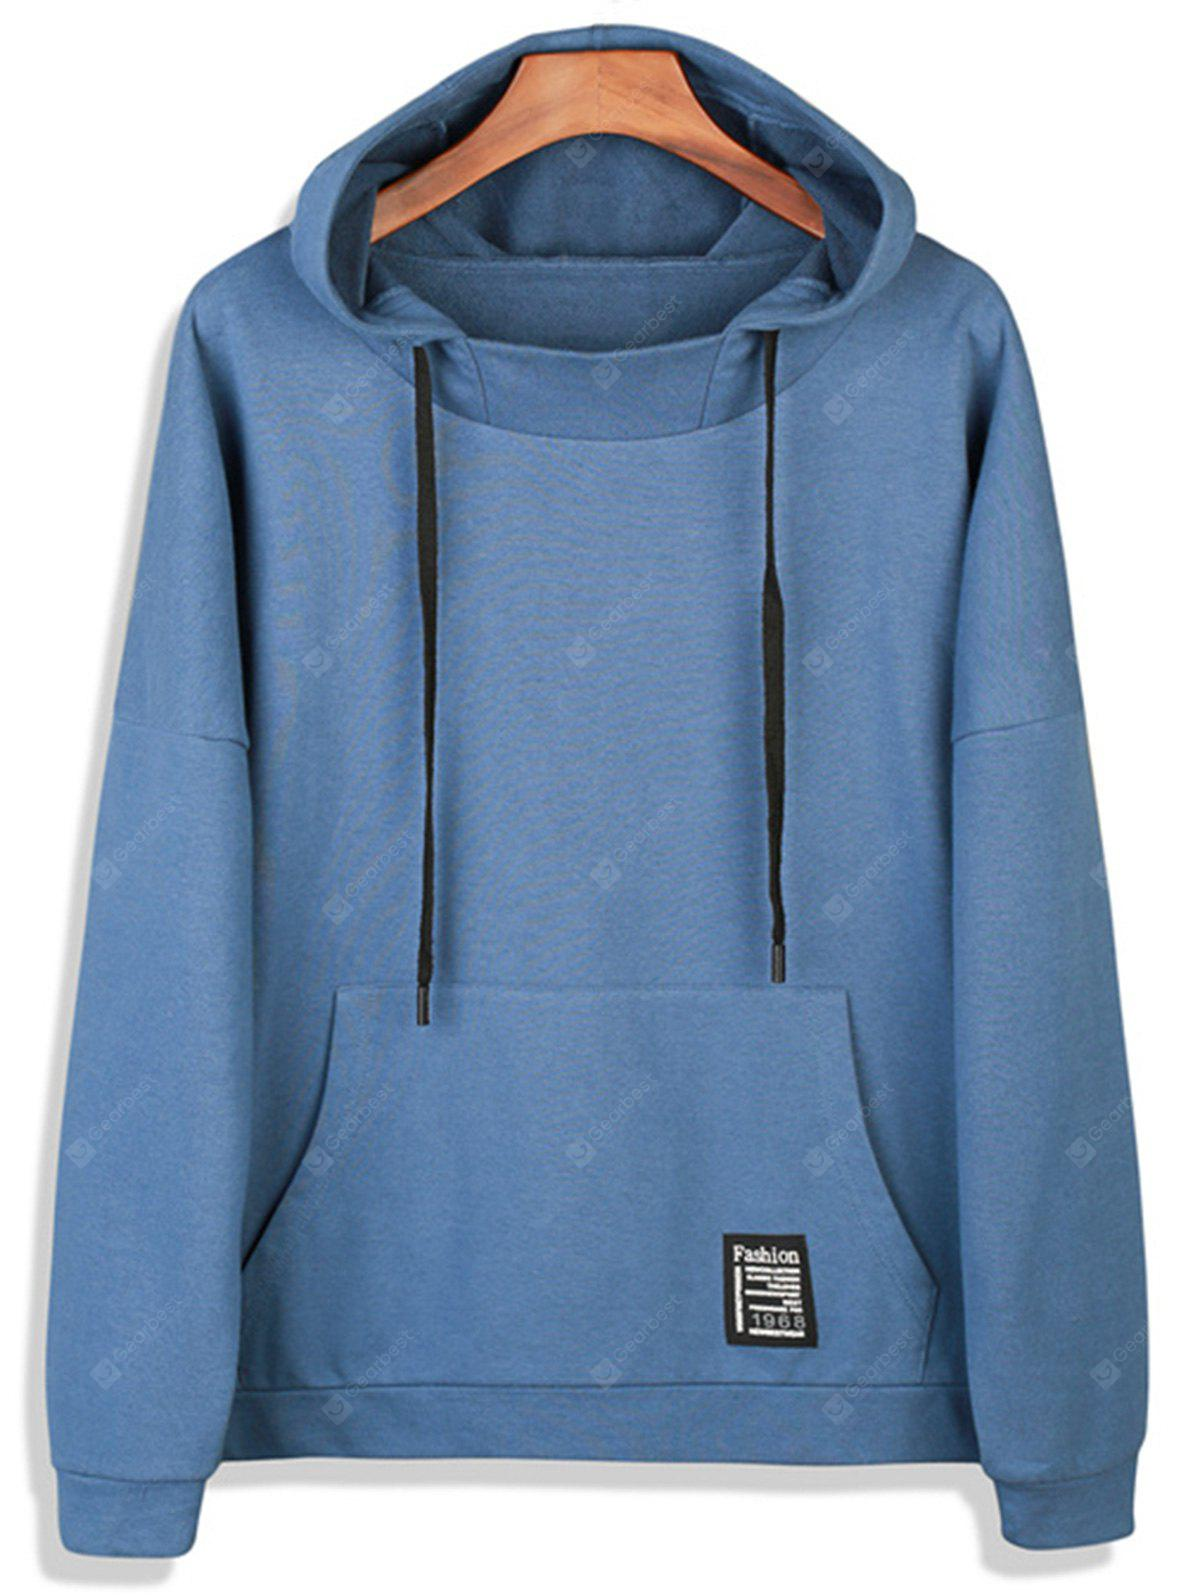 Drop Shoulder Graphic Print Pocket Pullover Hoodie